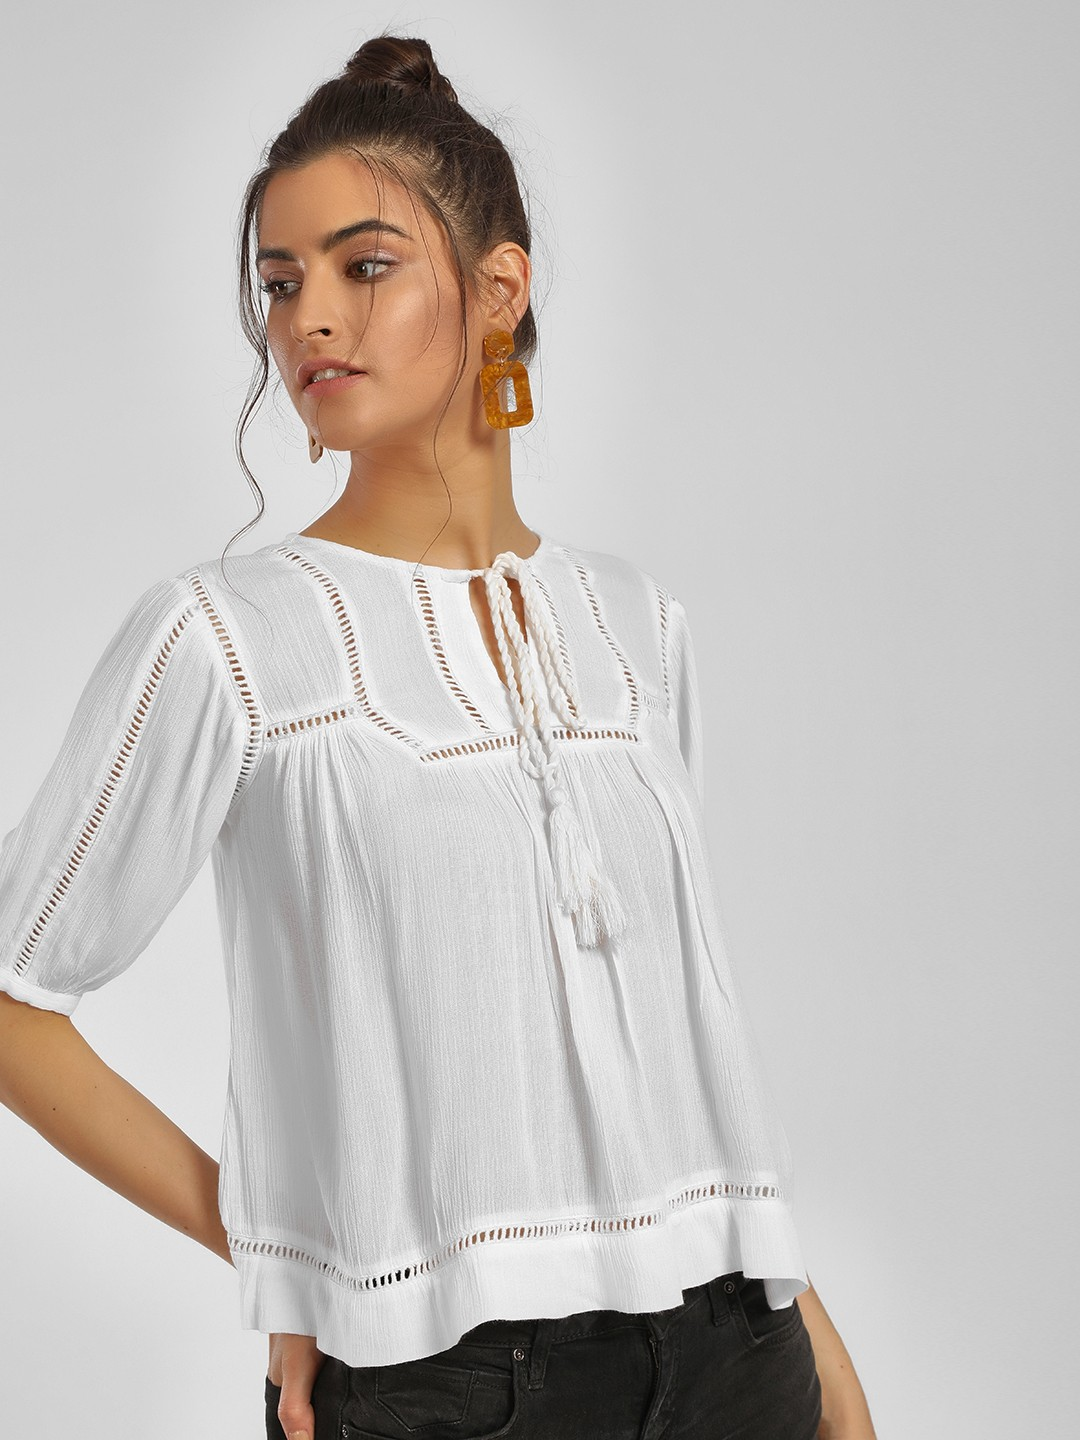 MIWAY White Lace Insert Flared Blouse 1